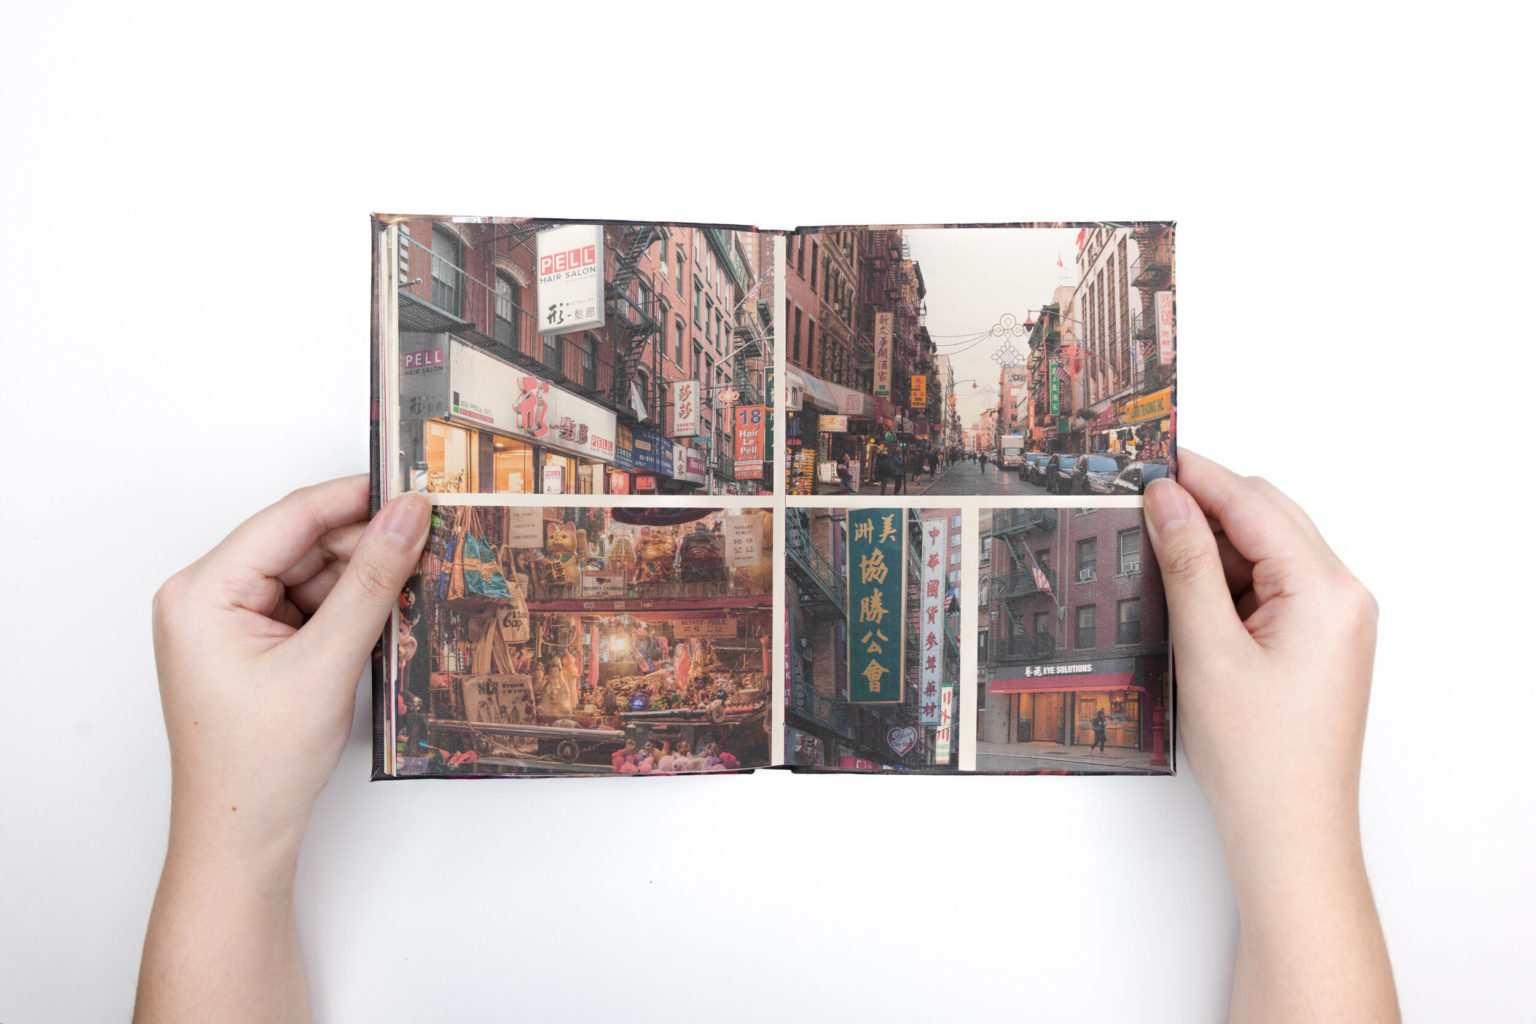 Book spread from 37 Years, 5 Weeks, 1 Day by Fay Qiu